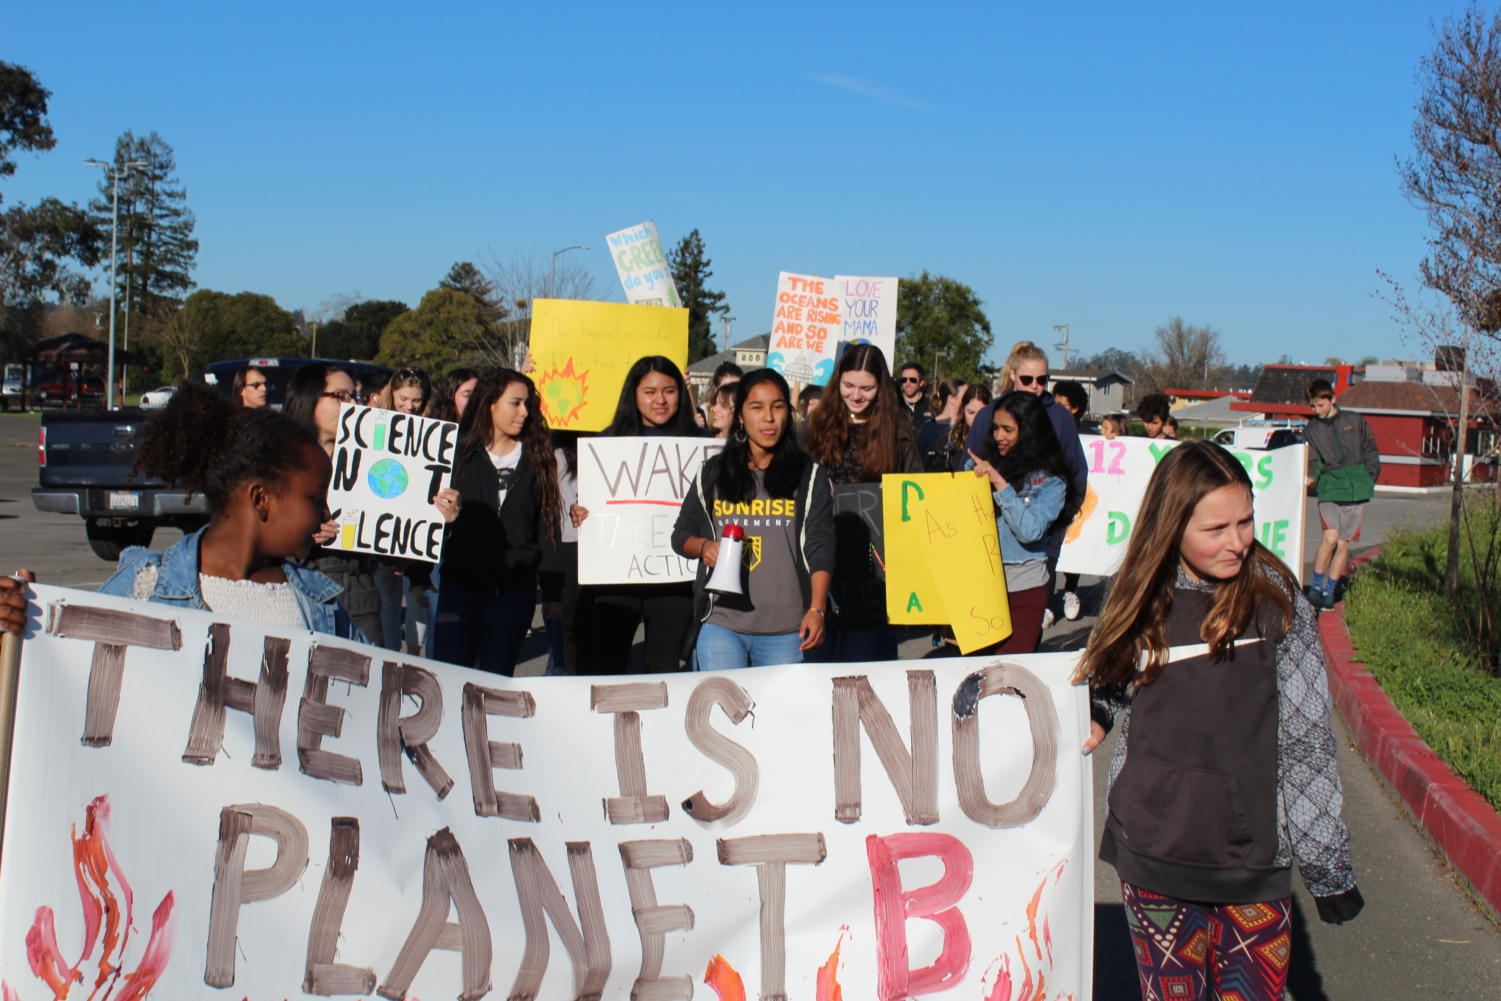 Live Oak Elementary School and Casa Grande High School students walk together through the streets of Petaluma to advocate for climate change.